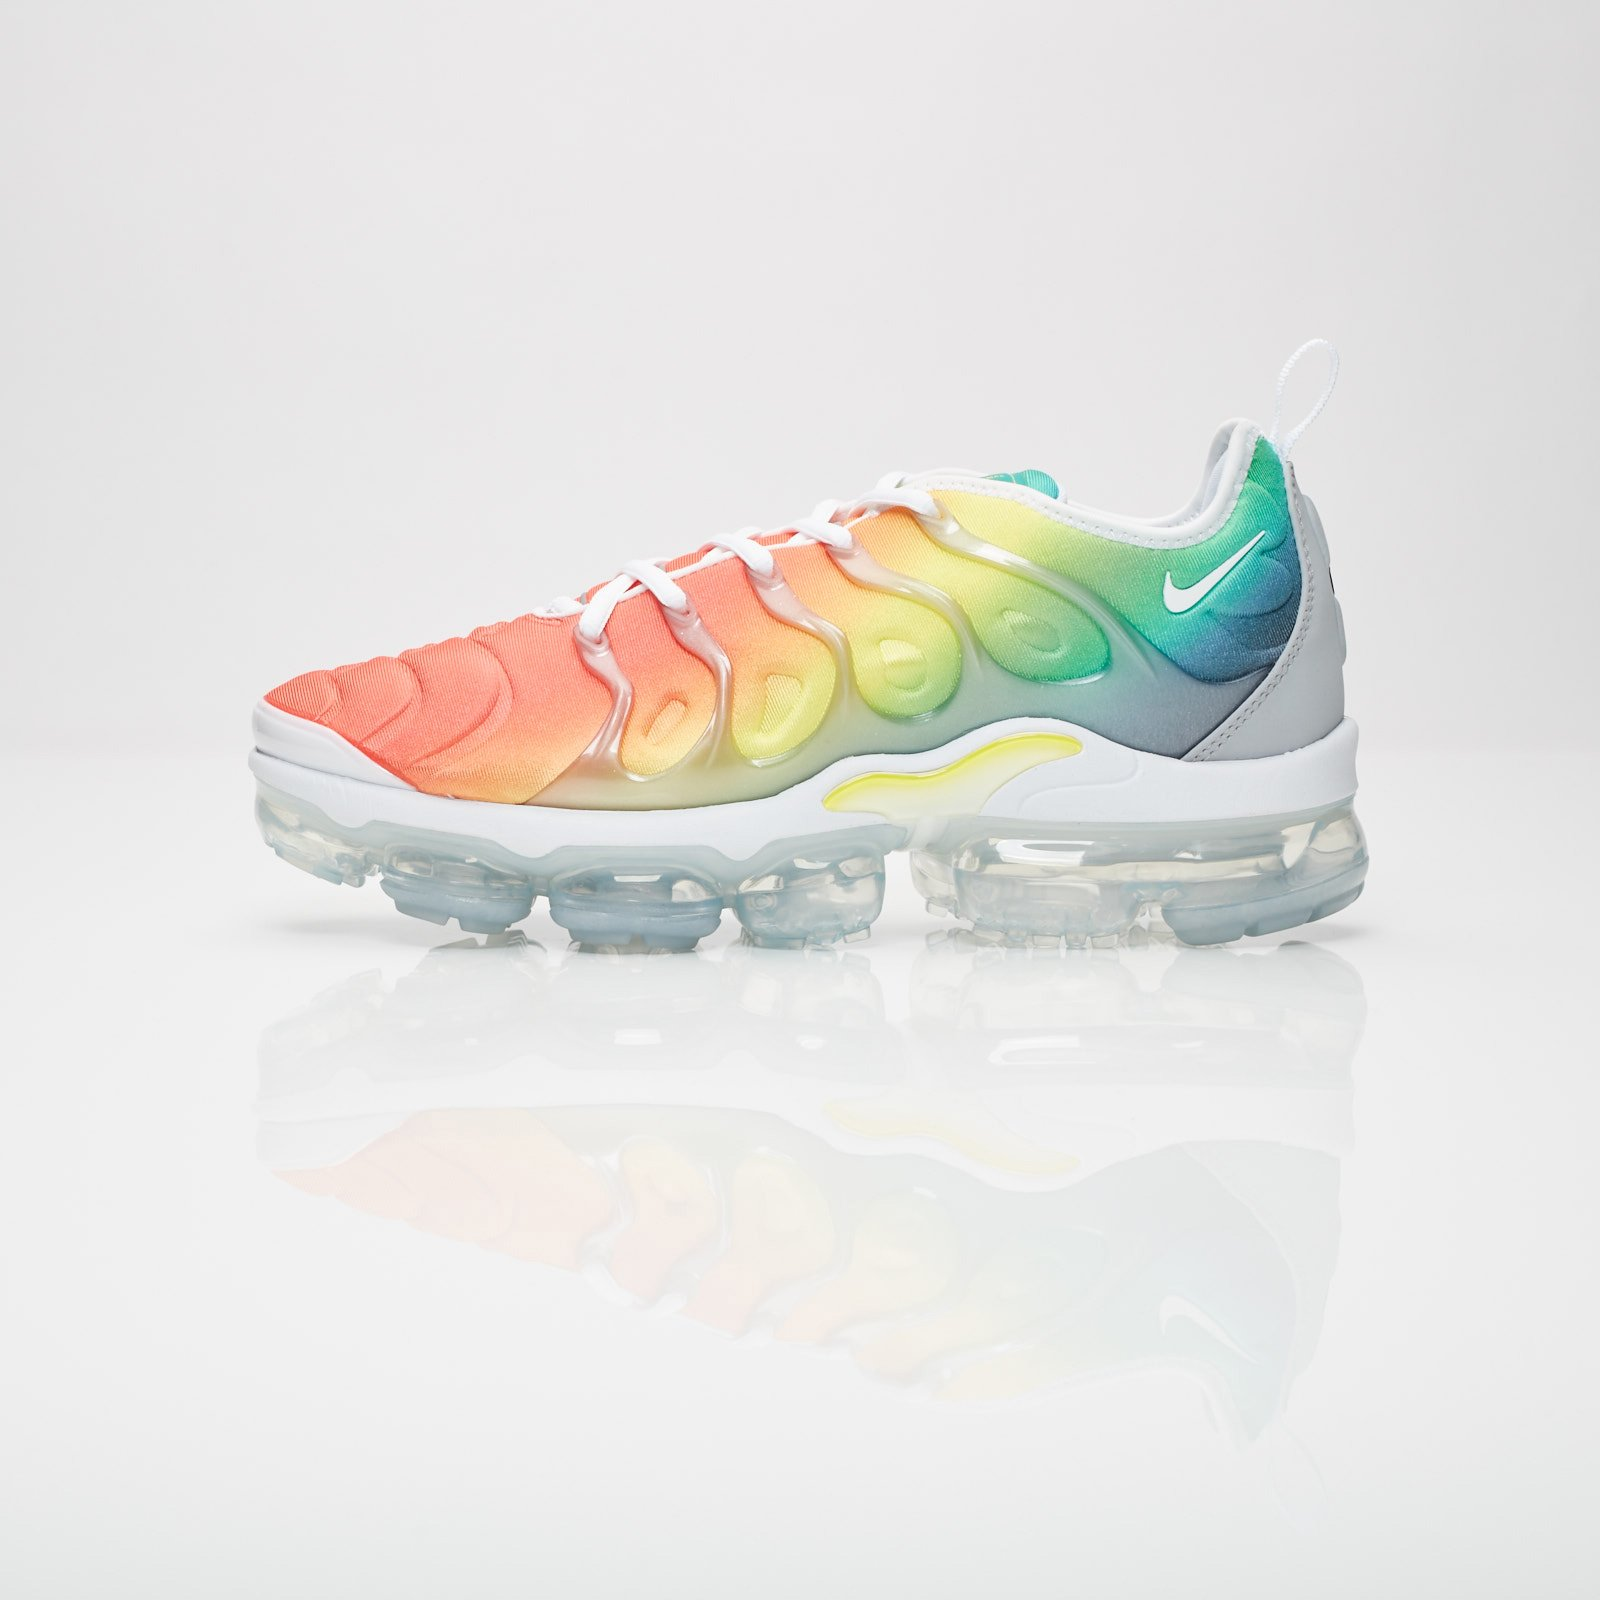 009f96d8c07 Nike Air Vapormax Plus - 924453-103 - Sneakersnstuff